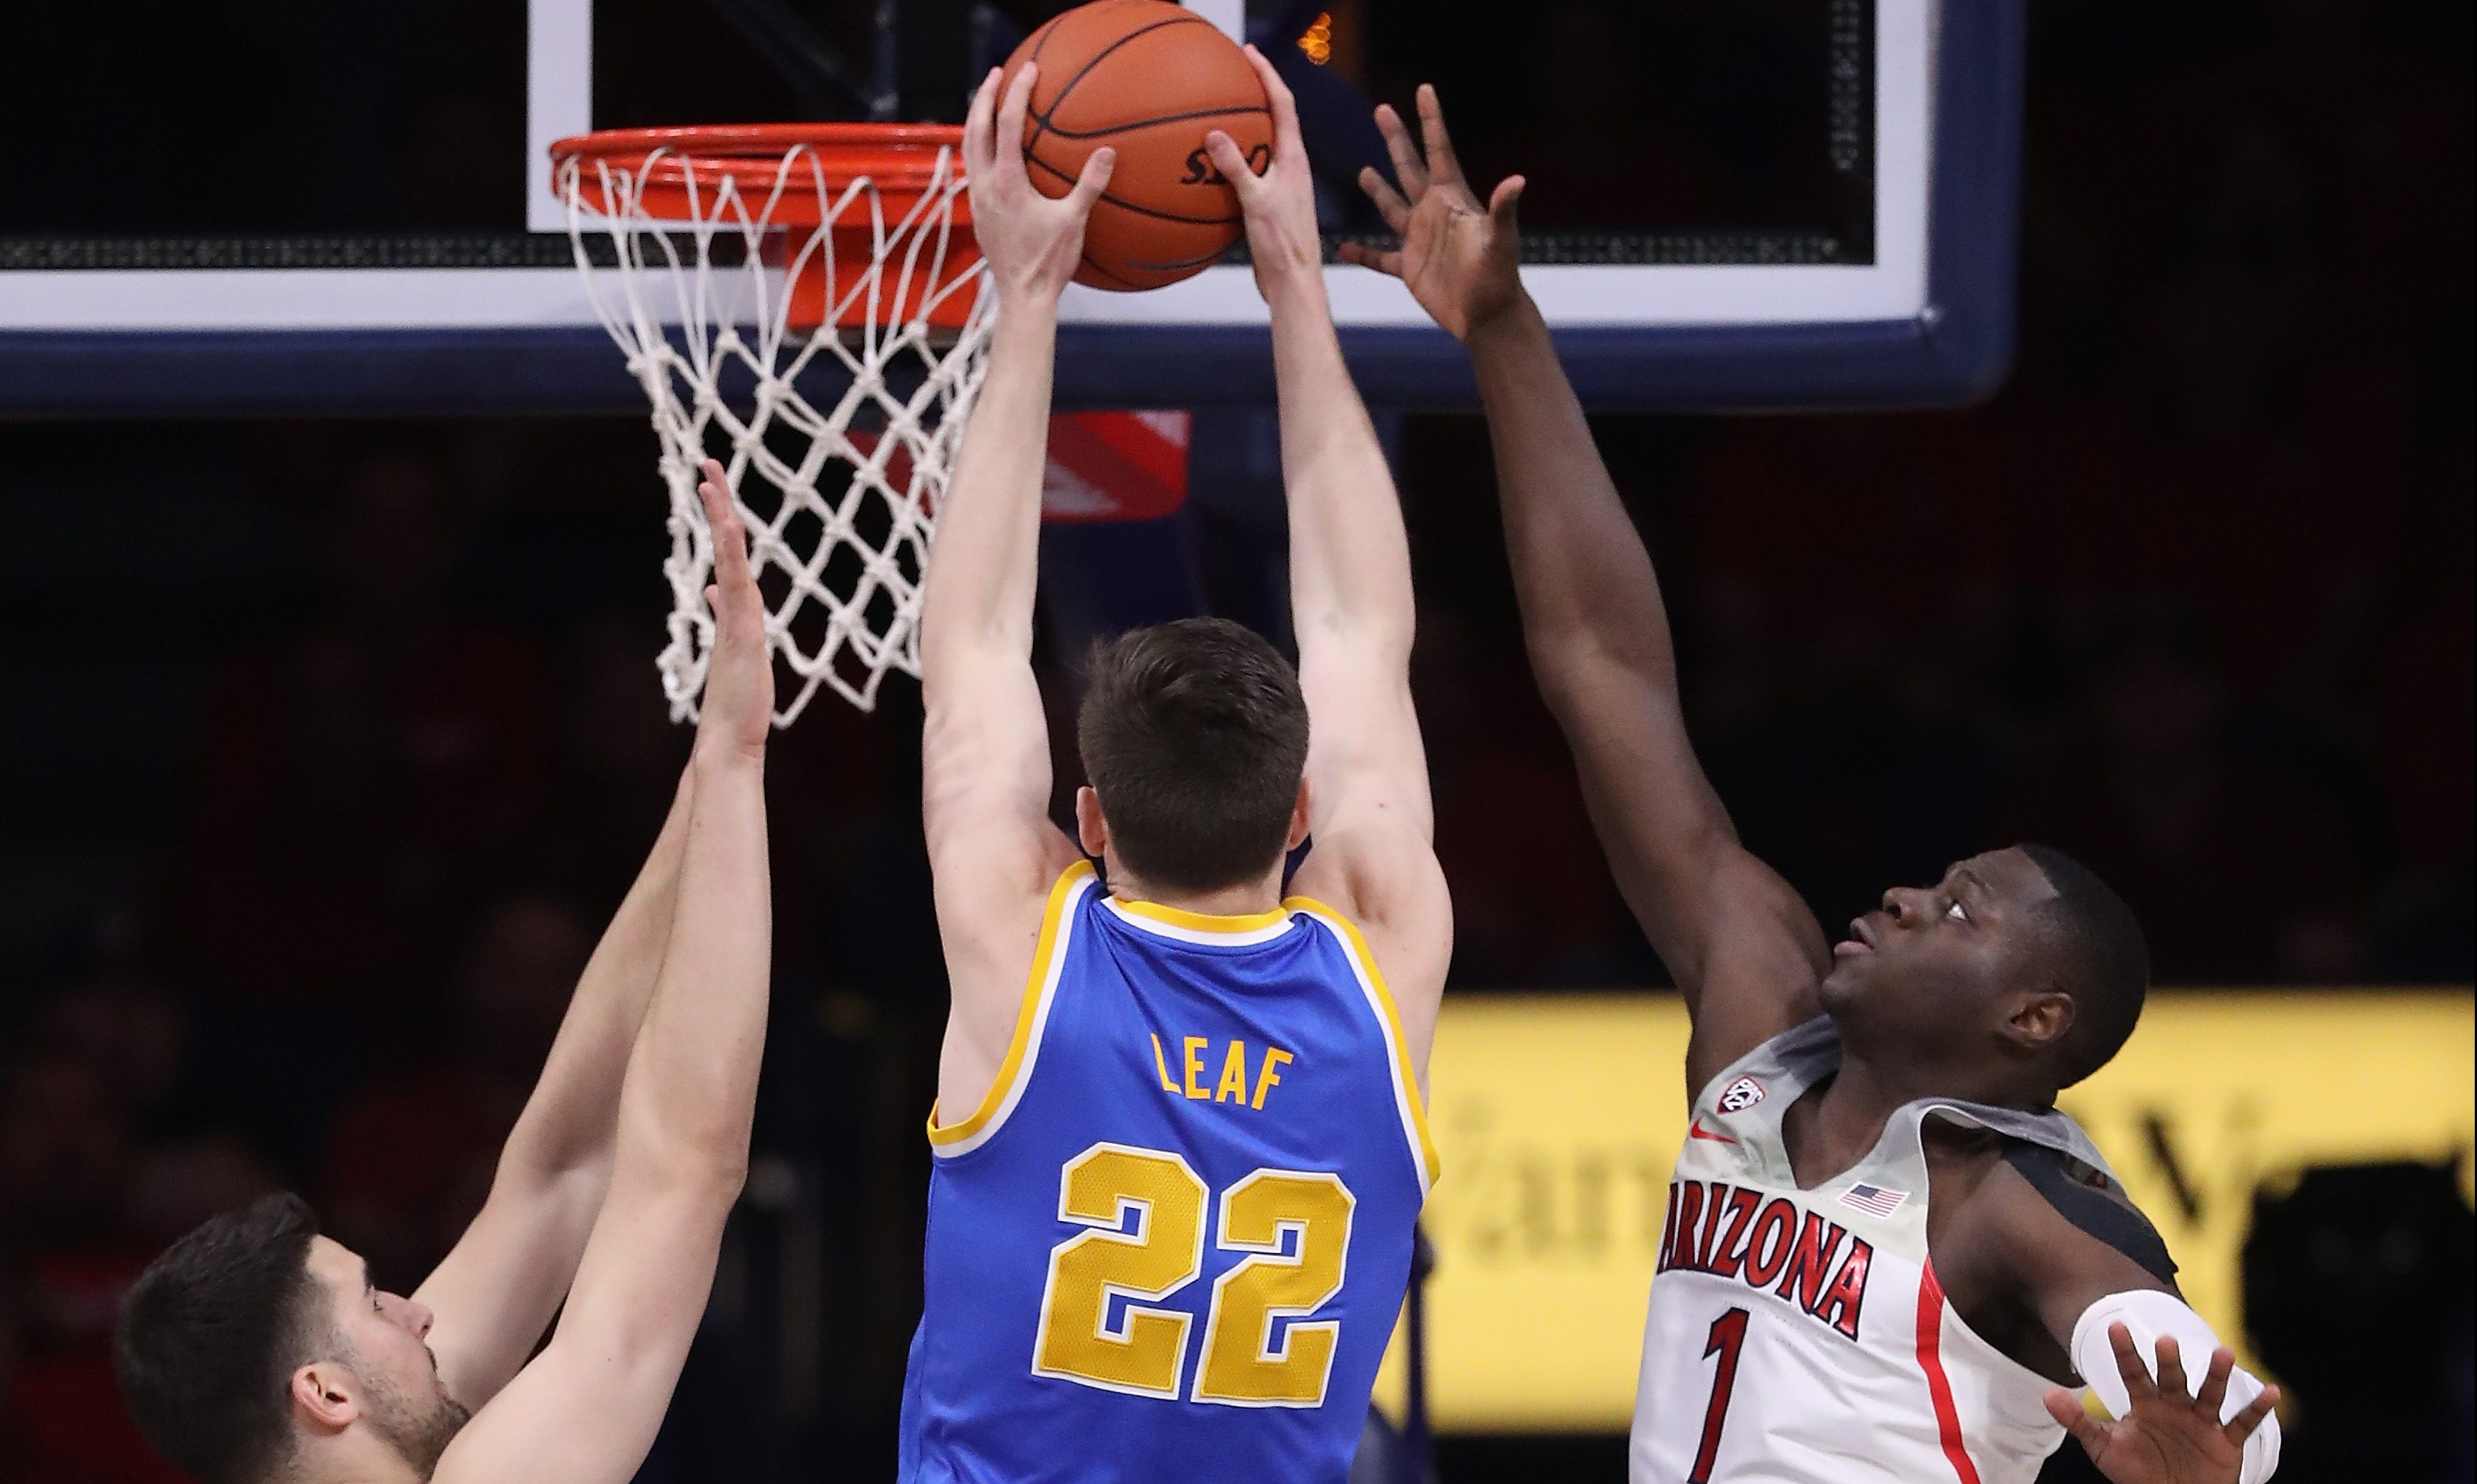 TUCSON, AZ - FEBRUARY 25:  TJ Leaf #22 of the UCLA Bruins attempts a shot between Dusan Ristic #14 and Rawle Alkins #1 of the Arizona Wildcats during the first half of the college basketball game at McKale Center on February 25, 2017 in Tucson, Arizona.  (Photo by Christian Petersen/Getty Images)